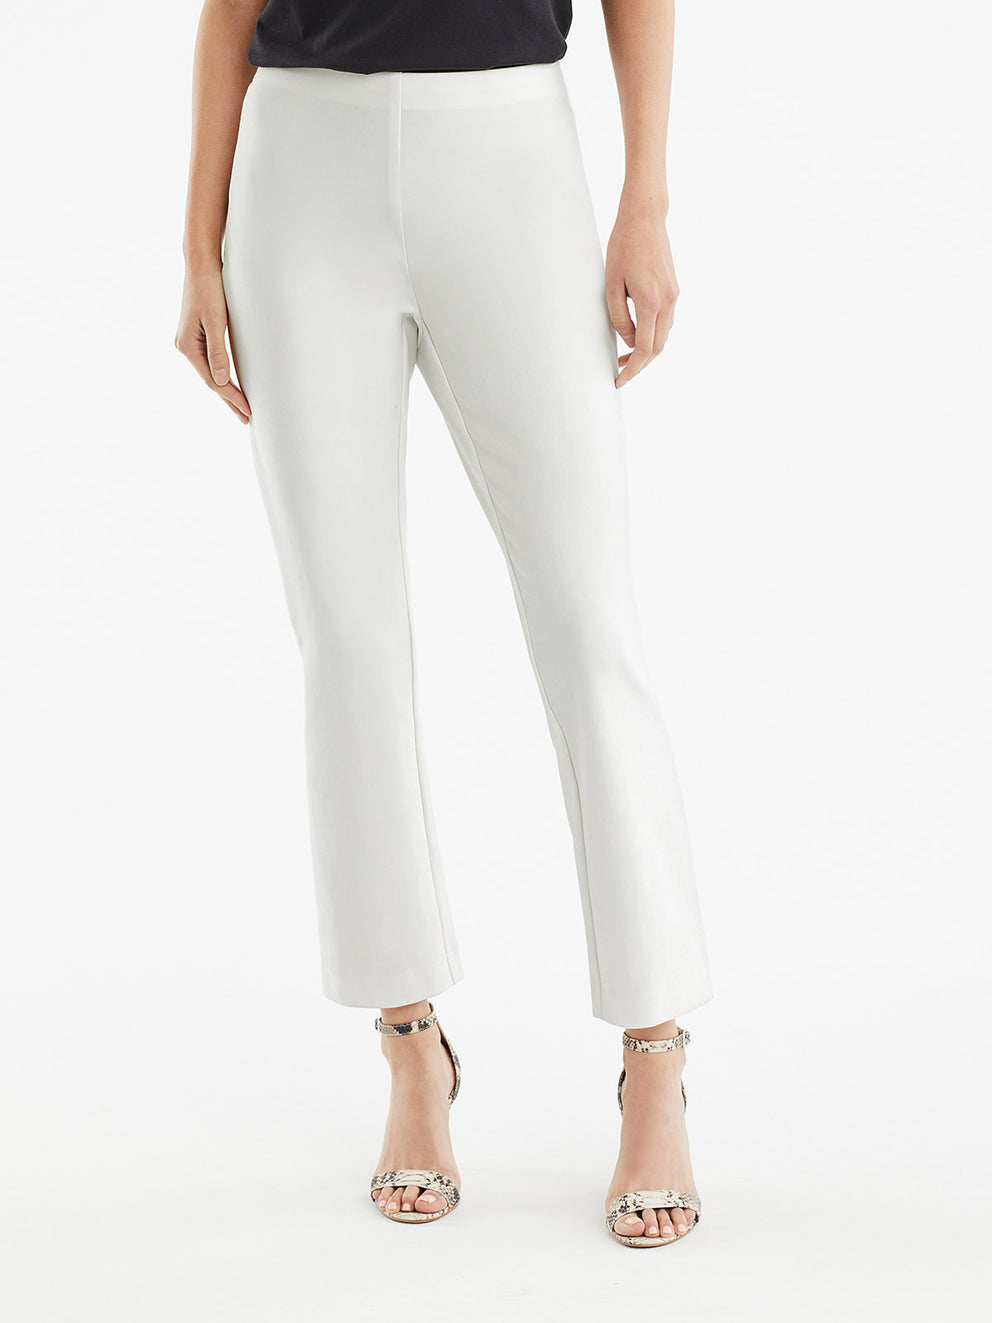 The Jones New York Clean Pull-On Pant in color Ivory - Image Position 1